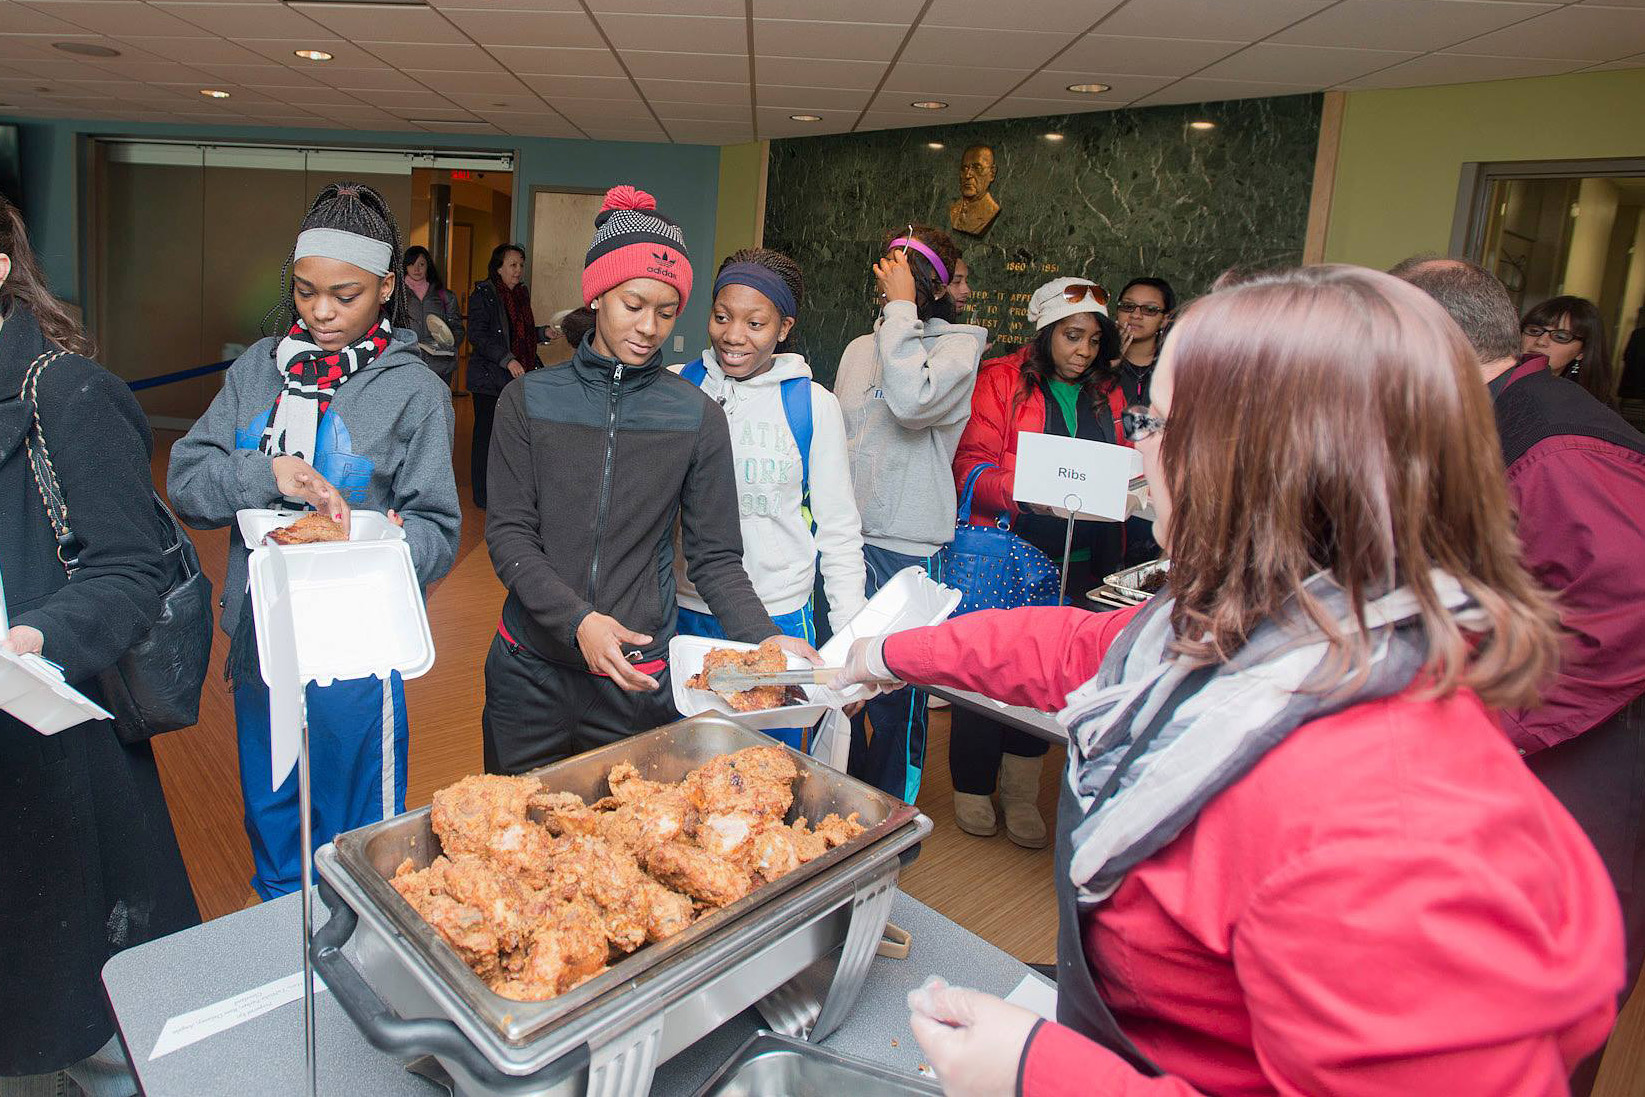 Attendees go through the food line at one of KCC's annual Soul Food Luncheon events.